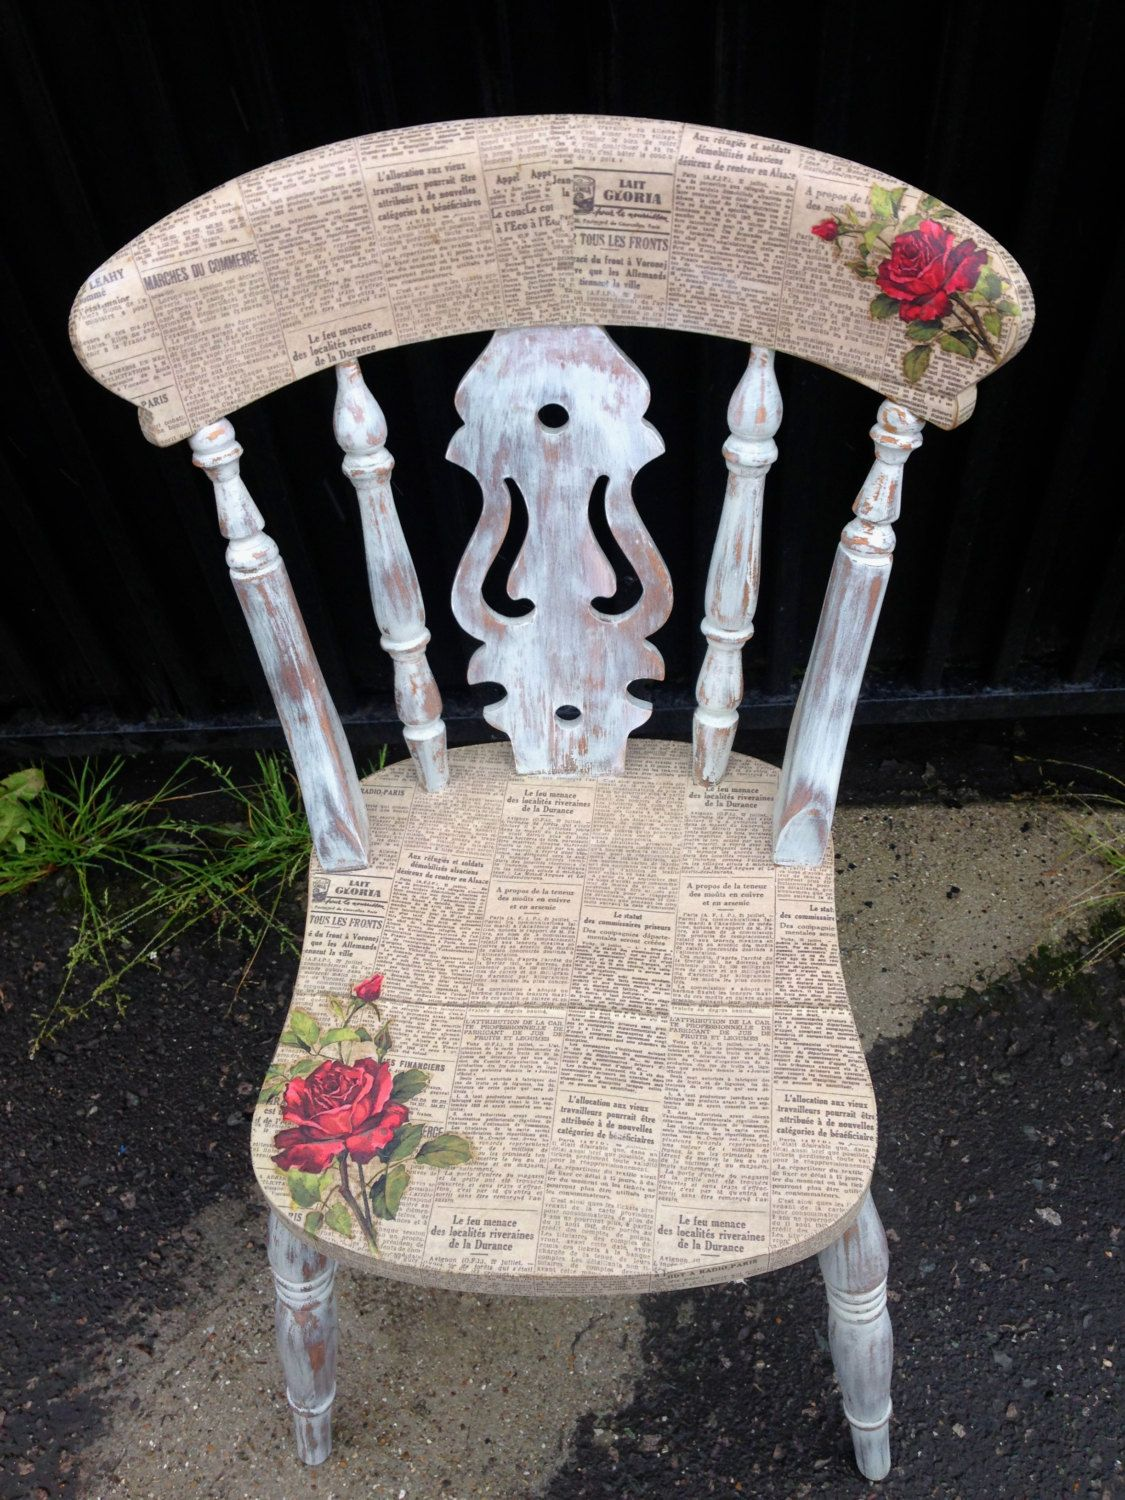 Ikea Gartenmöbel Nachstreichen Decoupage Vintage Chair W Roses And News Paper Print By Urbanrook